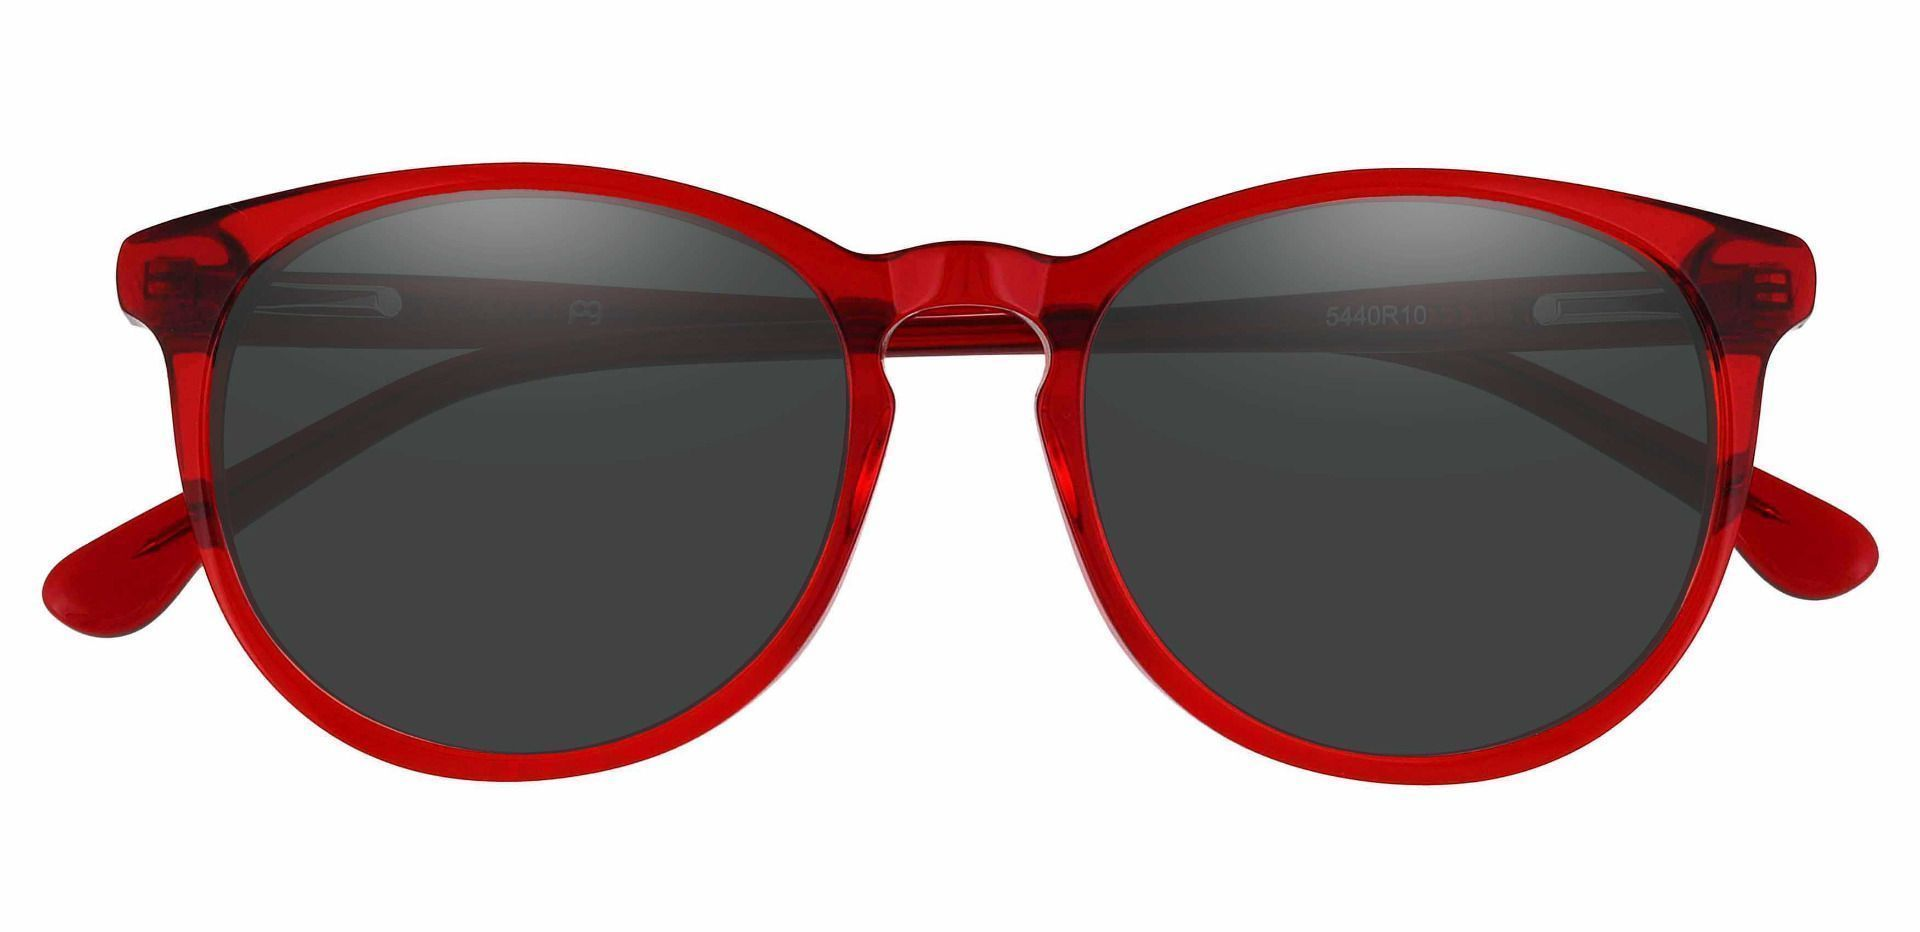 Carriage Round Lined Bifocal Sunglasses - Red Frame With Gray Lenses